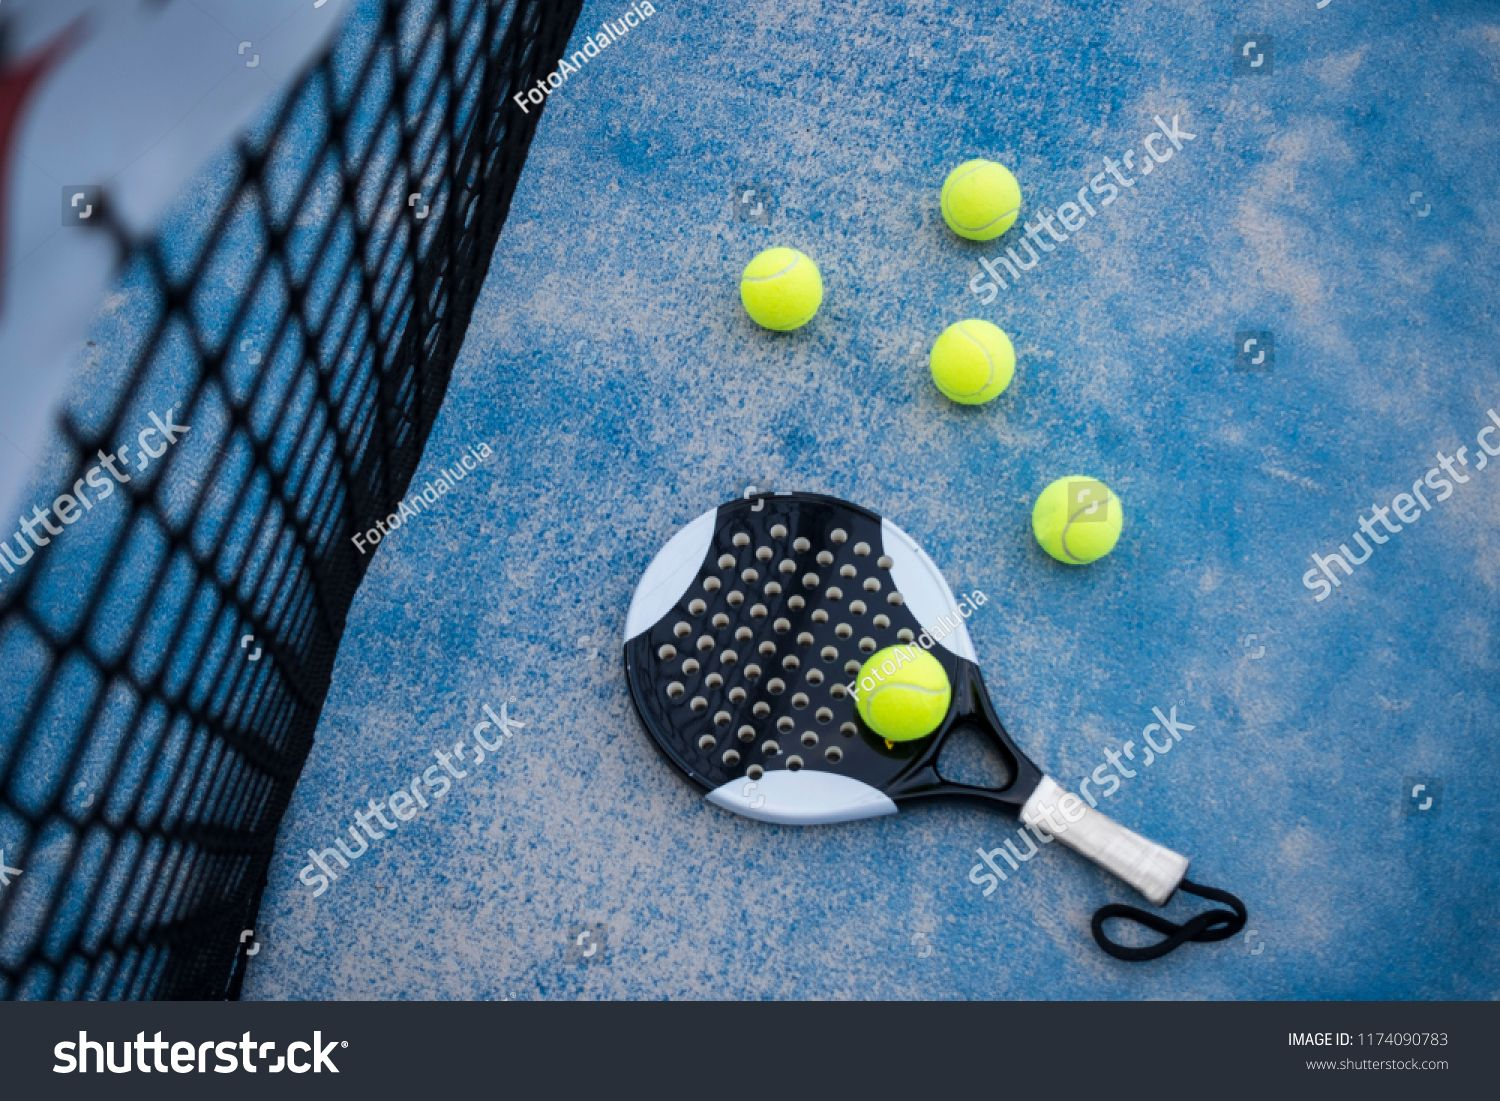 Paddle Tennis Racket And Balls On Court Artificial Grass Ad Affiliate Racket Tennis Paddle Balls Tennis Racket Rackets Paddle Ball